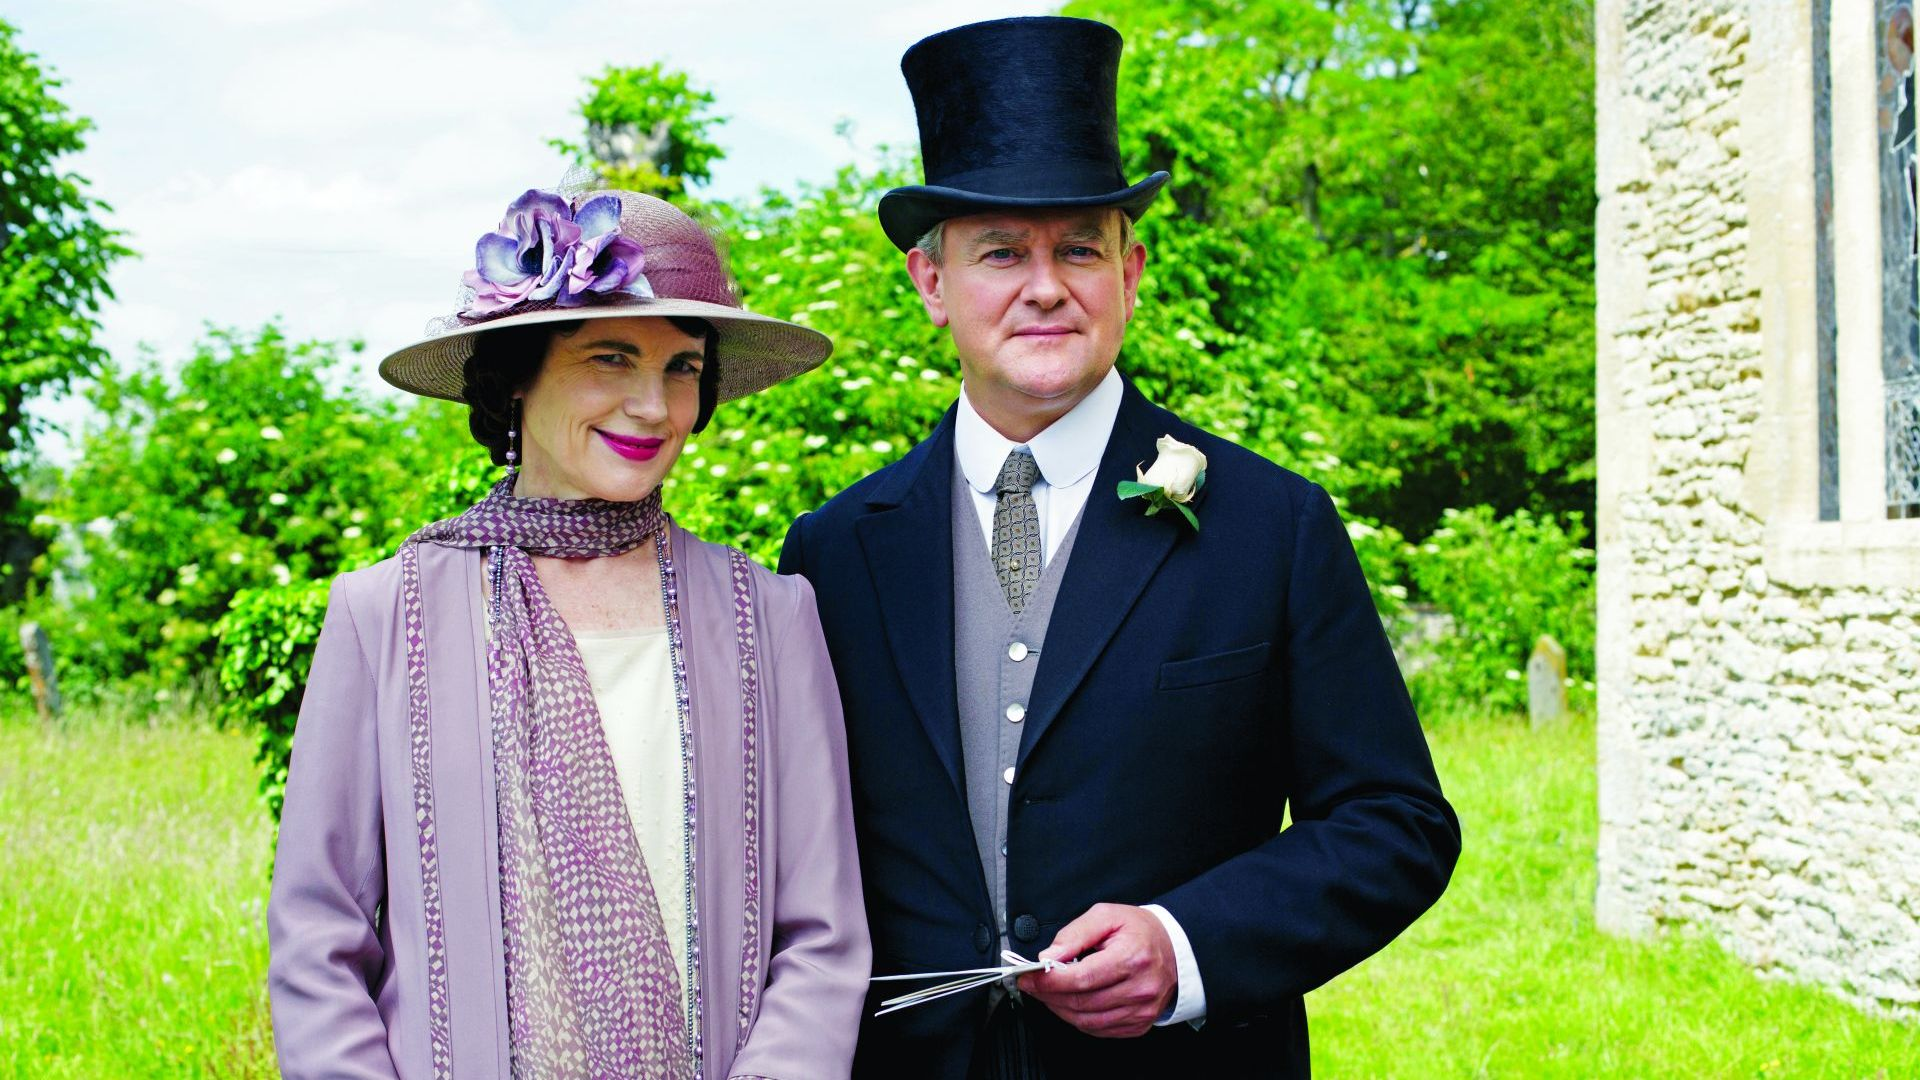 ELIZABETH MCGOVERN as Cora, Countess of Grantham and HUGH BONNEVILLE as Robert, Earl of Grantham, are with us from Season 1 through Season 6. Courtesy of © Carnival Film and Television Limited for MASTERPIECE